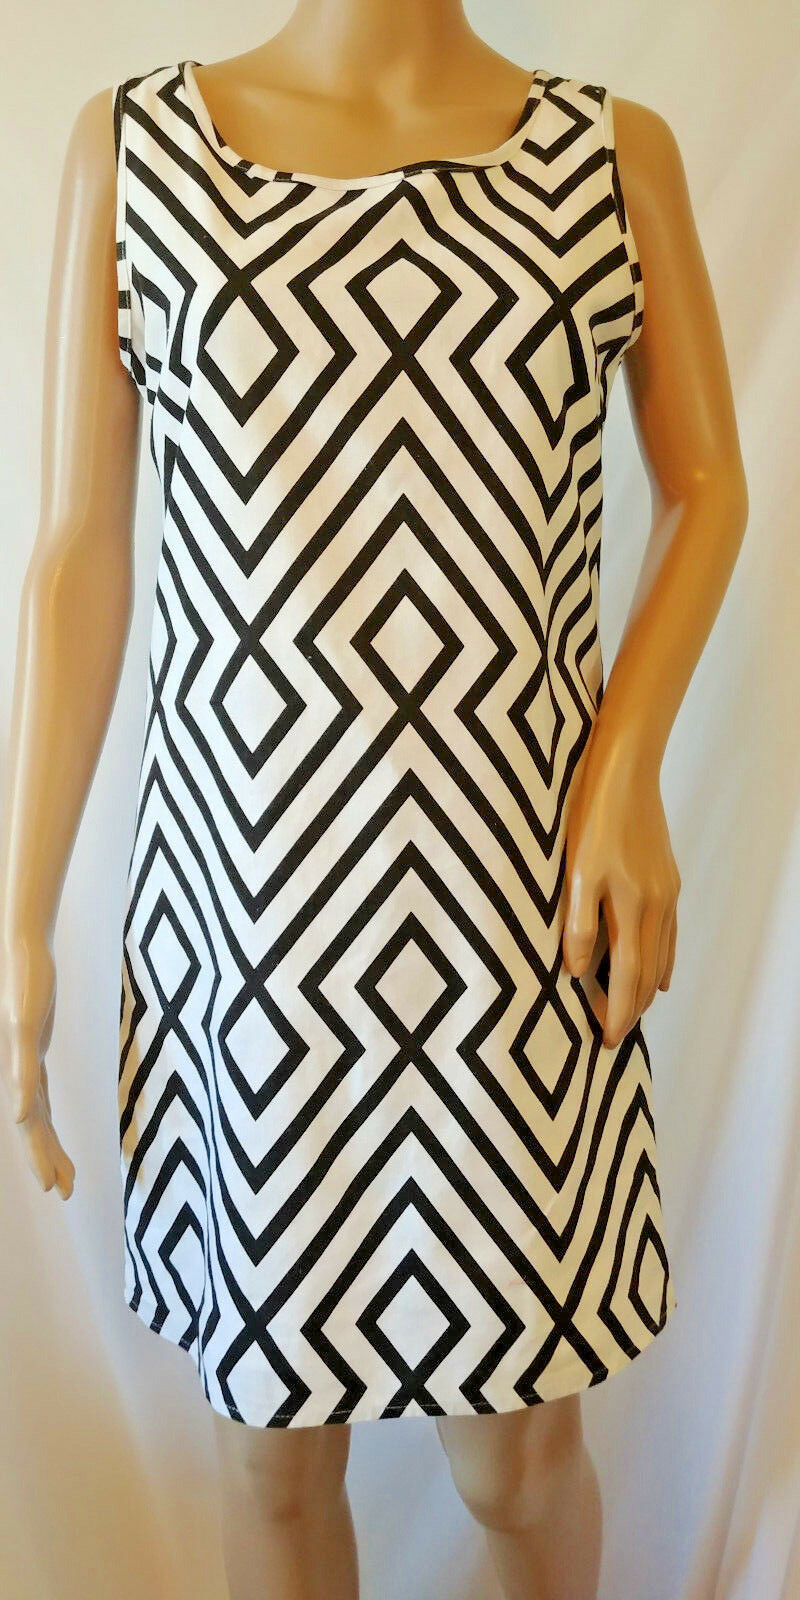 Peach Love Cream Sleeveless Dress Size S Black White Linen Blend Lined